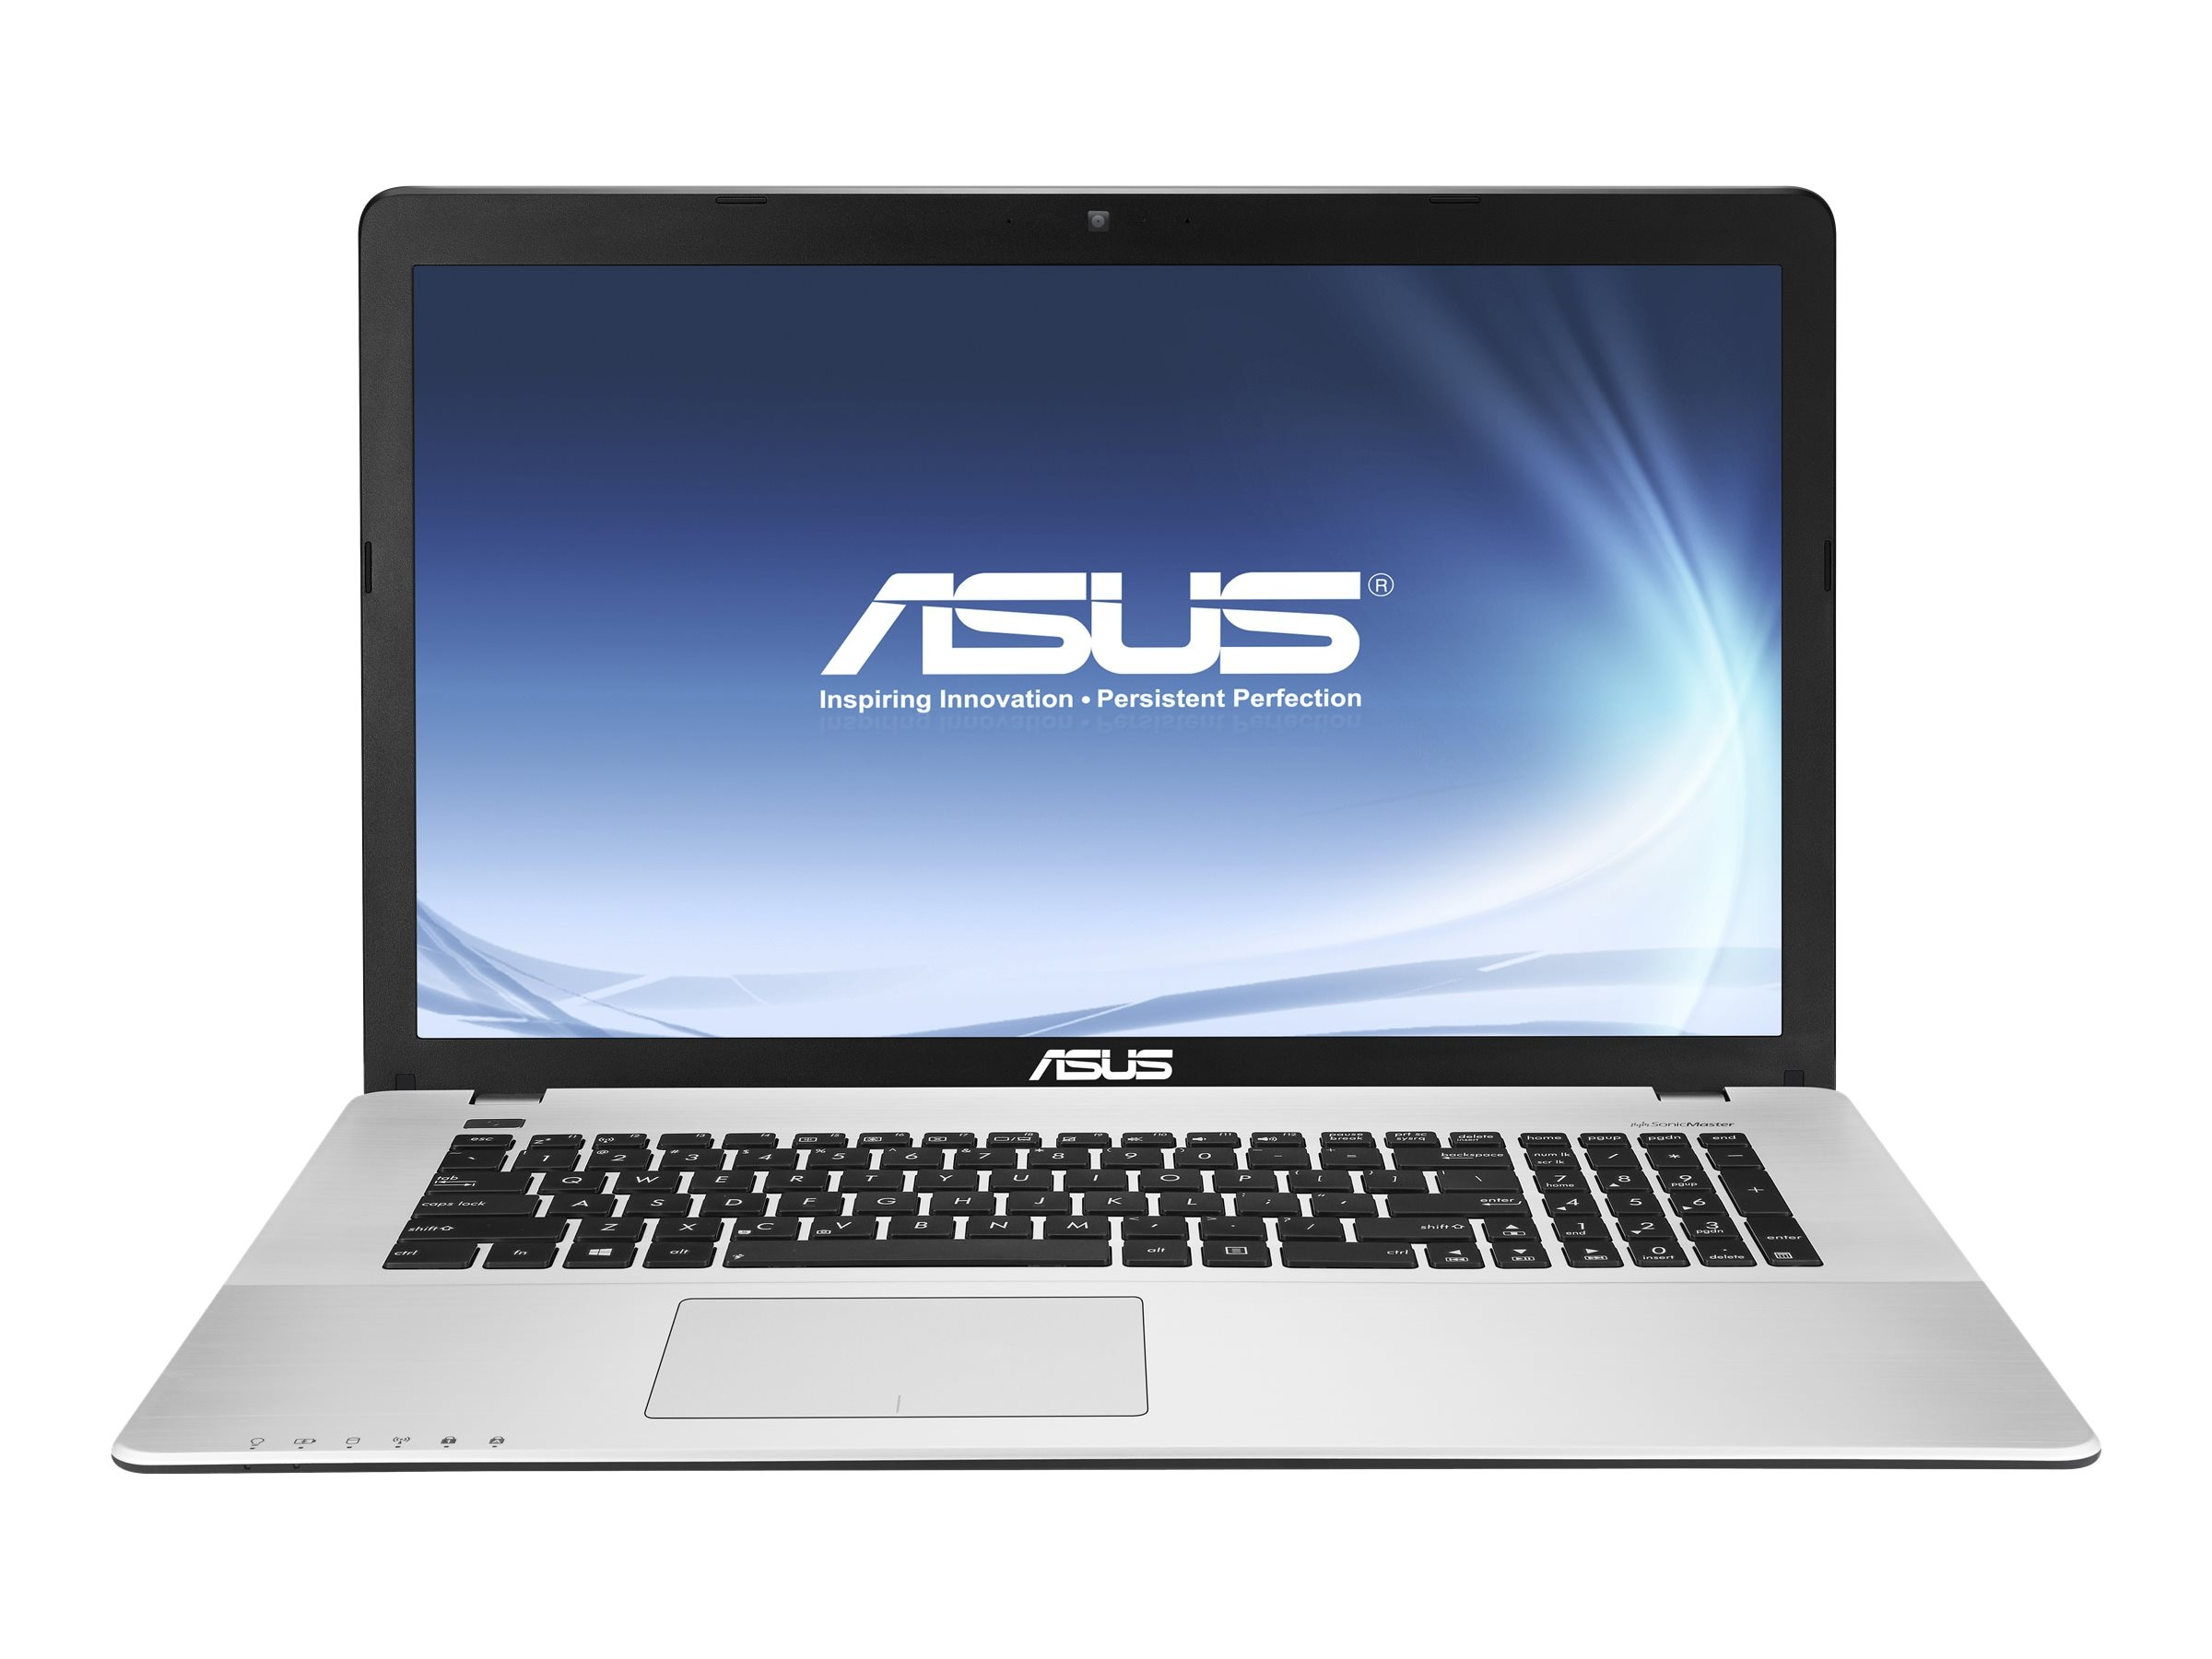 Asus X750JN-DB71 Core i7-4700HQ 2.4GHz 8GB 2TB 17.3 W8.1-64 Dark Gray, X750JN-DB71